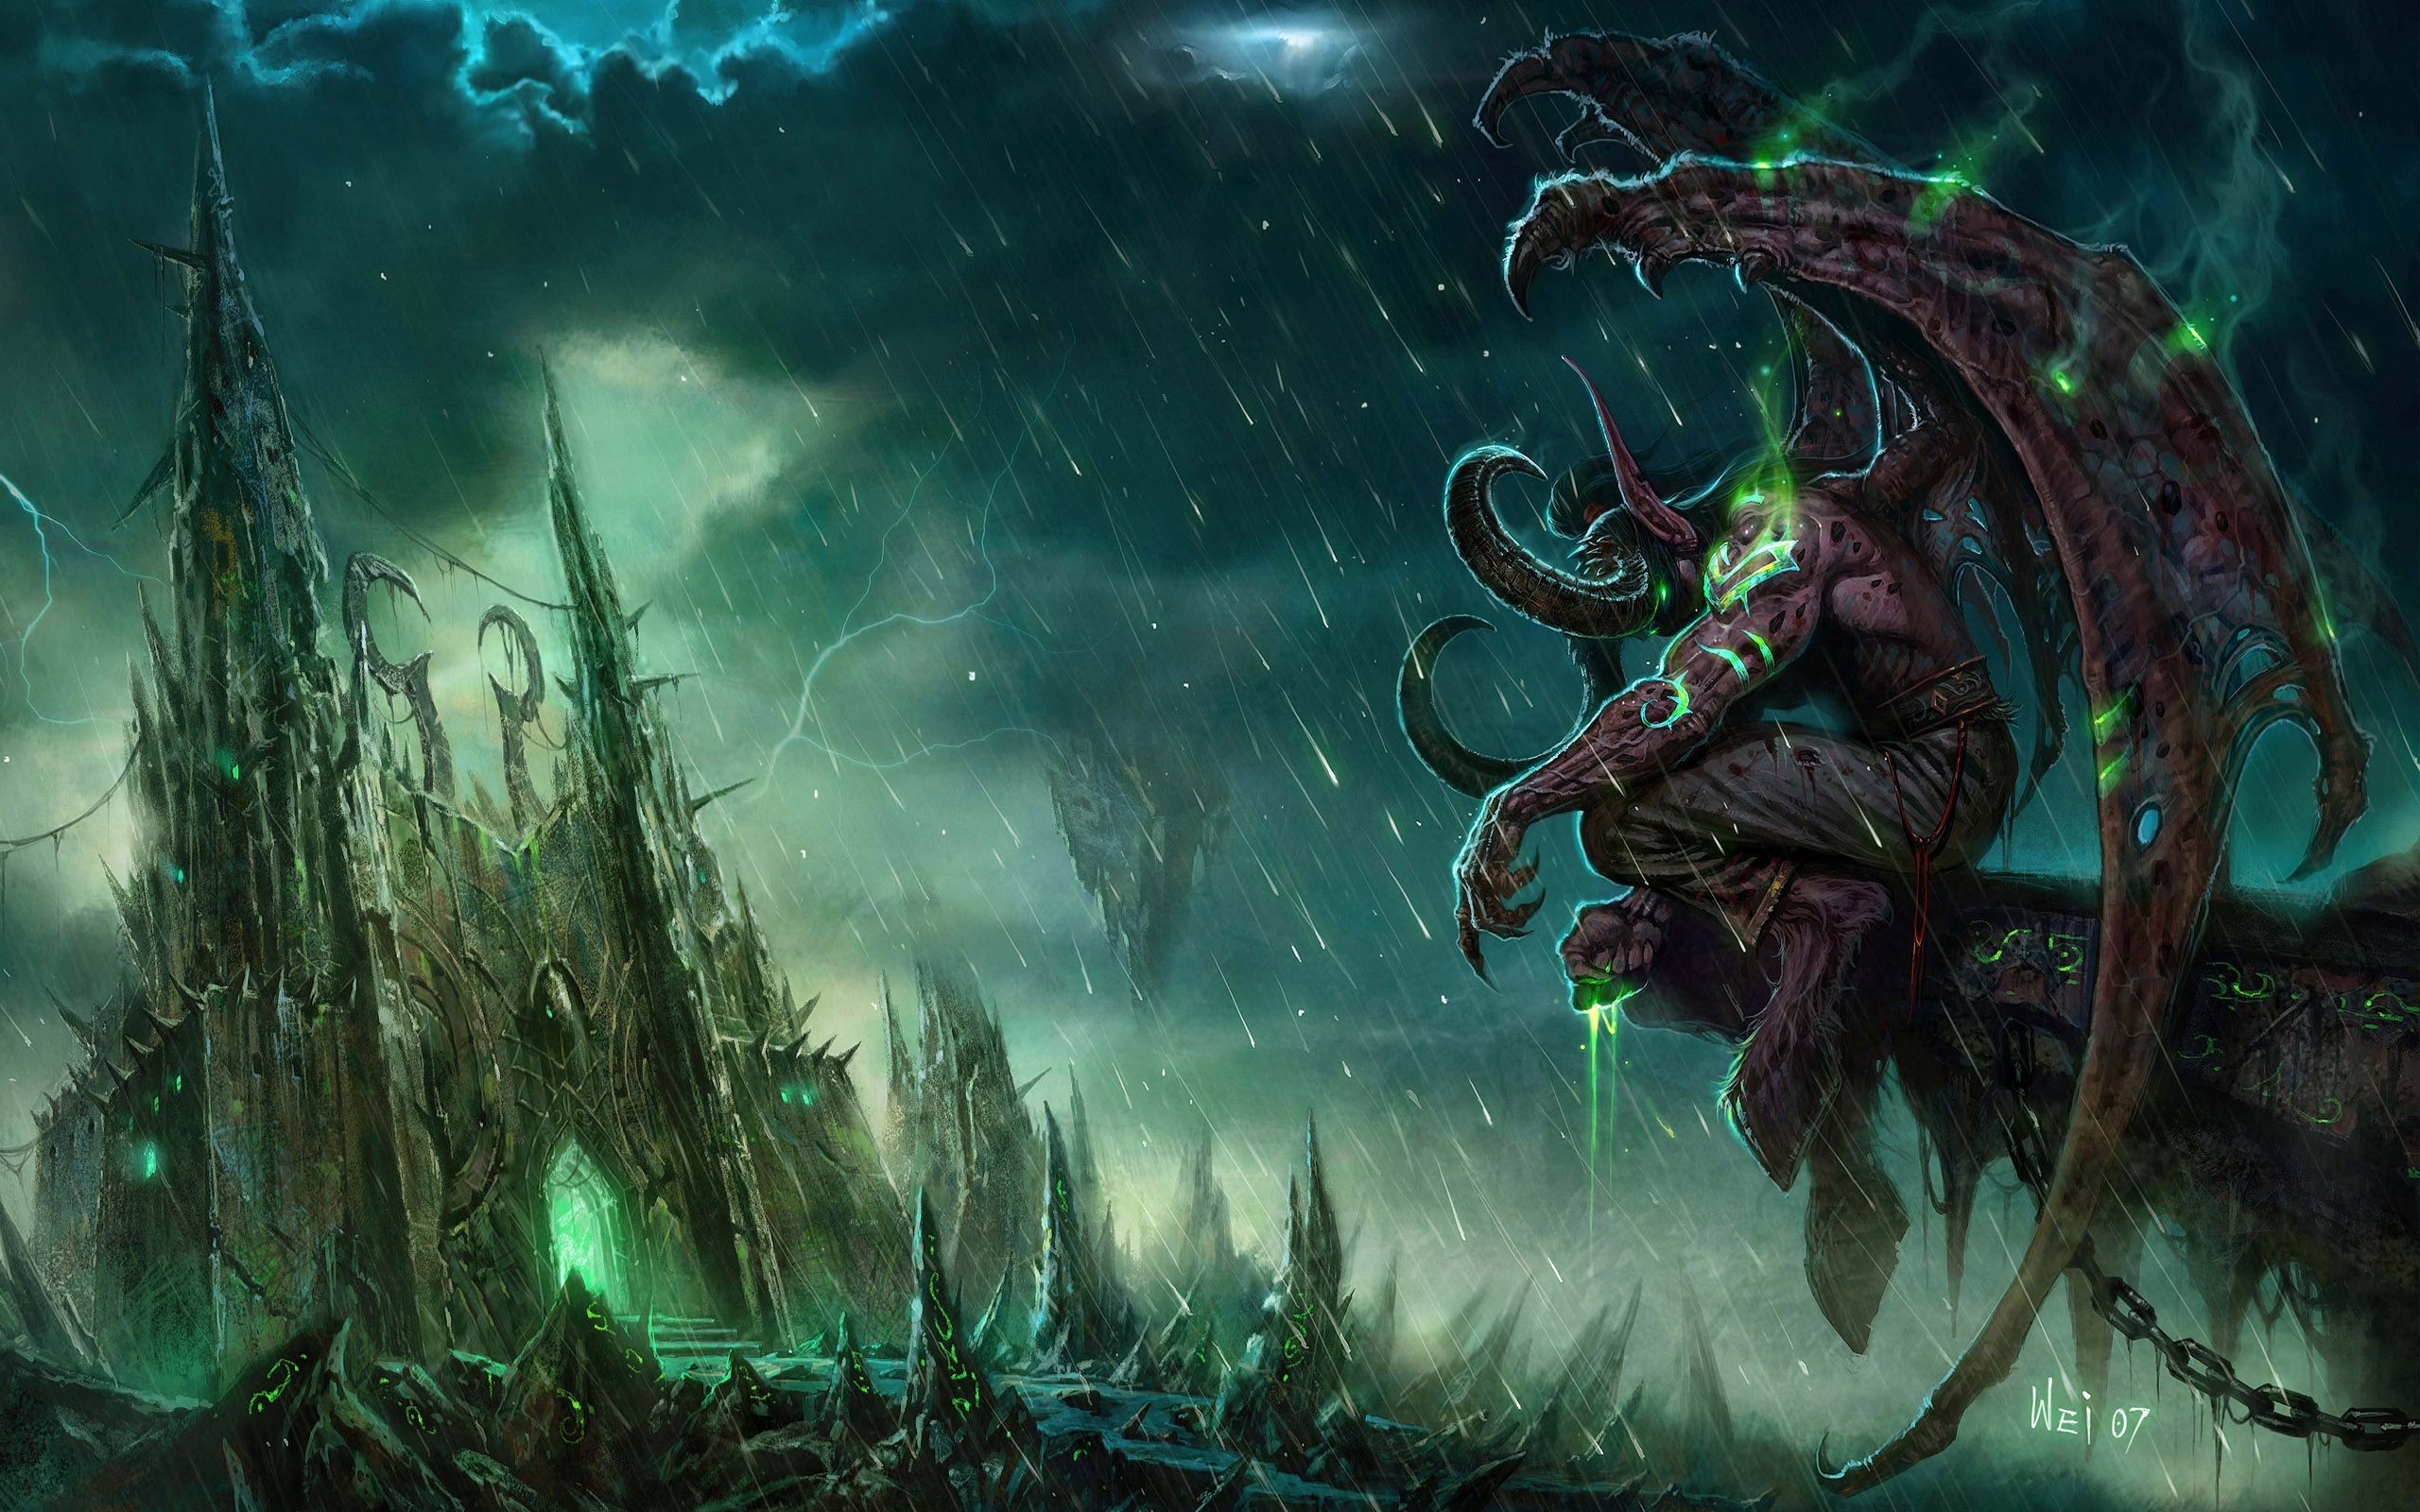 29 illidan stormrage fonds d'écran hd | arrière-plans - wallpaper abyss